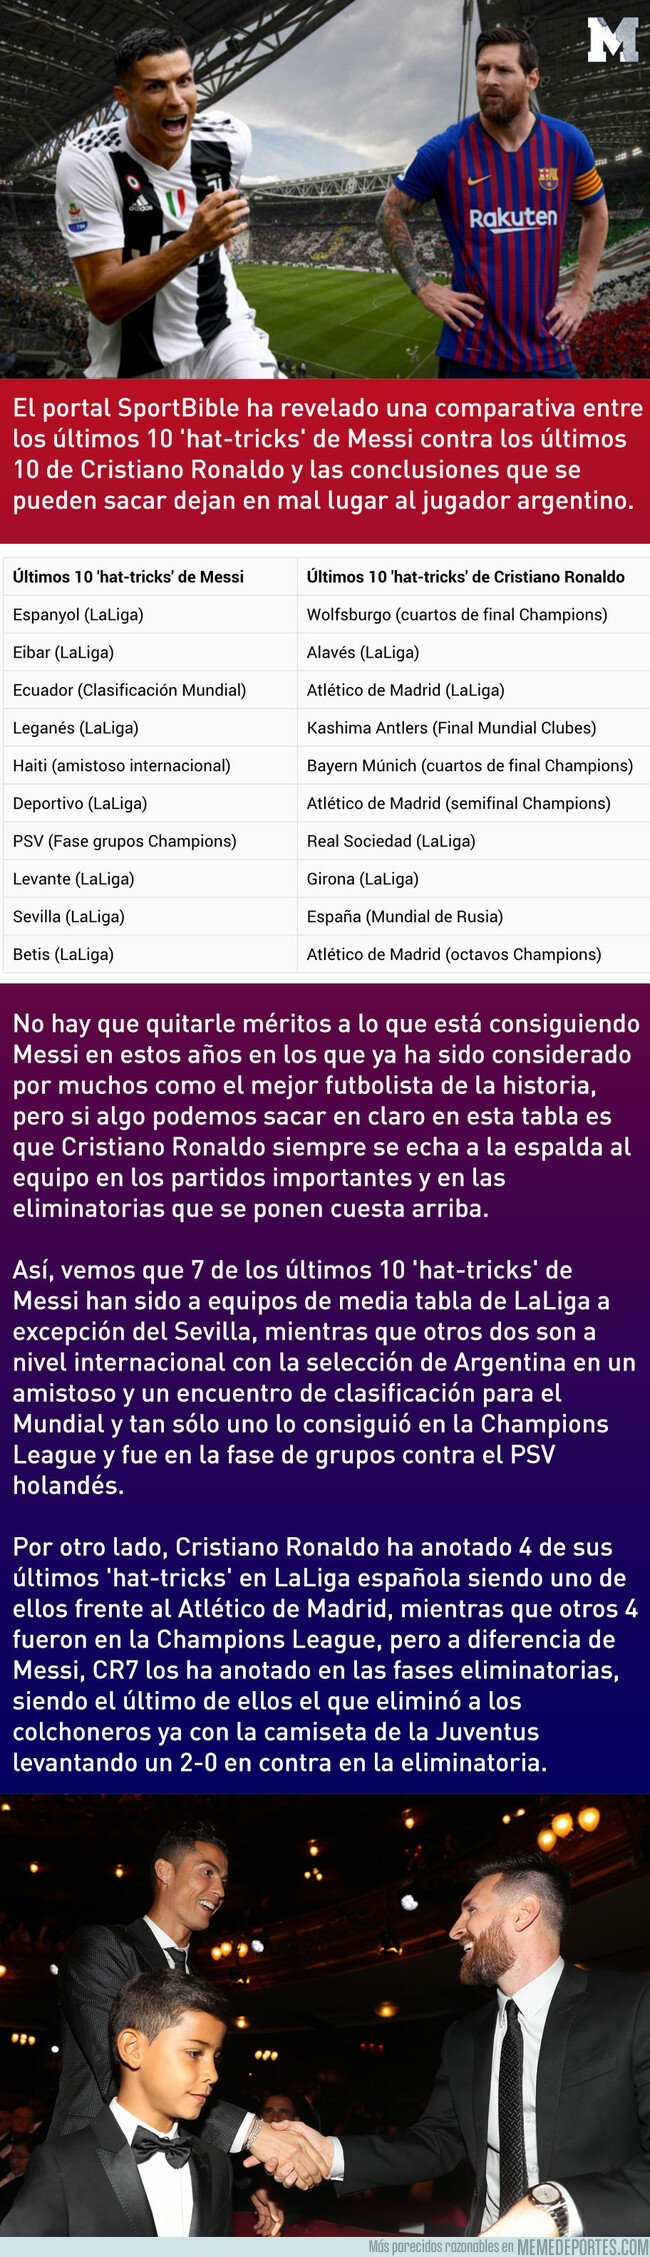 1068871 - La comparativa de los últimos 10 'hat-tricks' de Messi y CR7